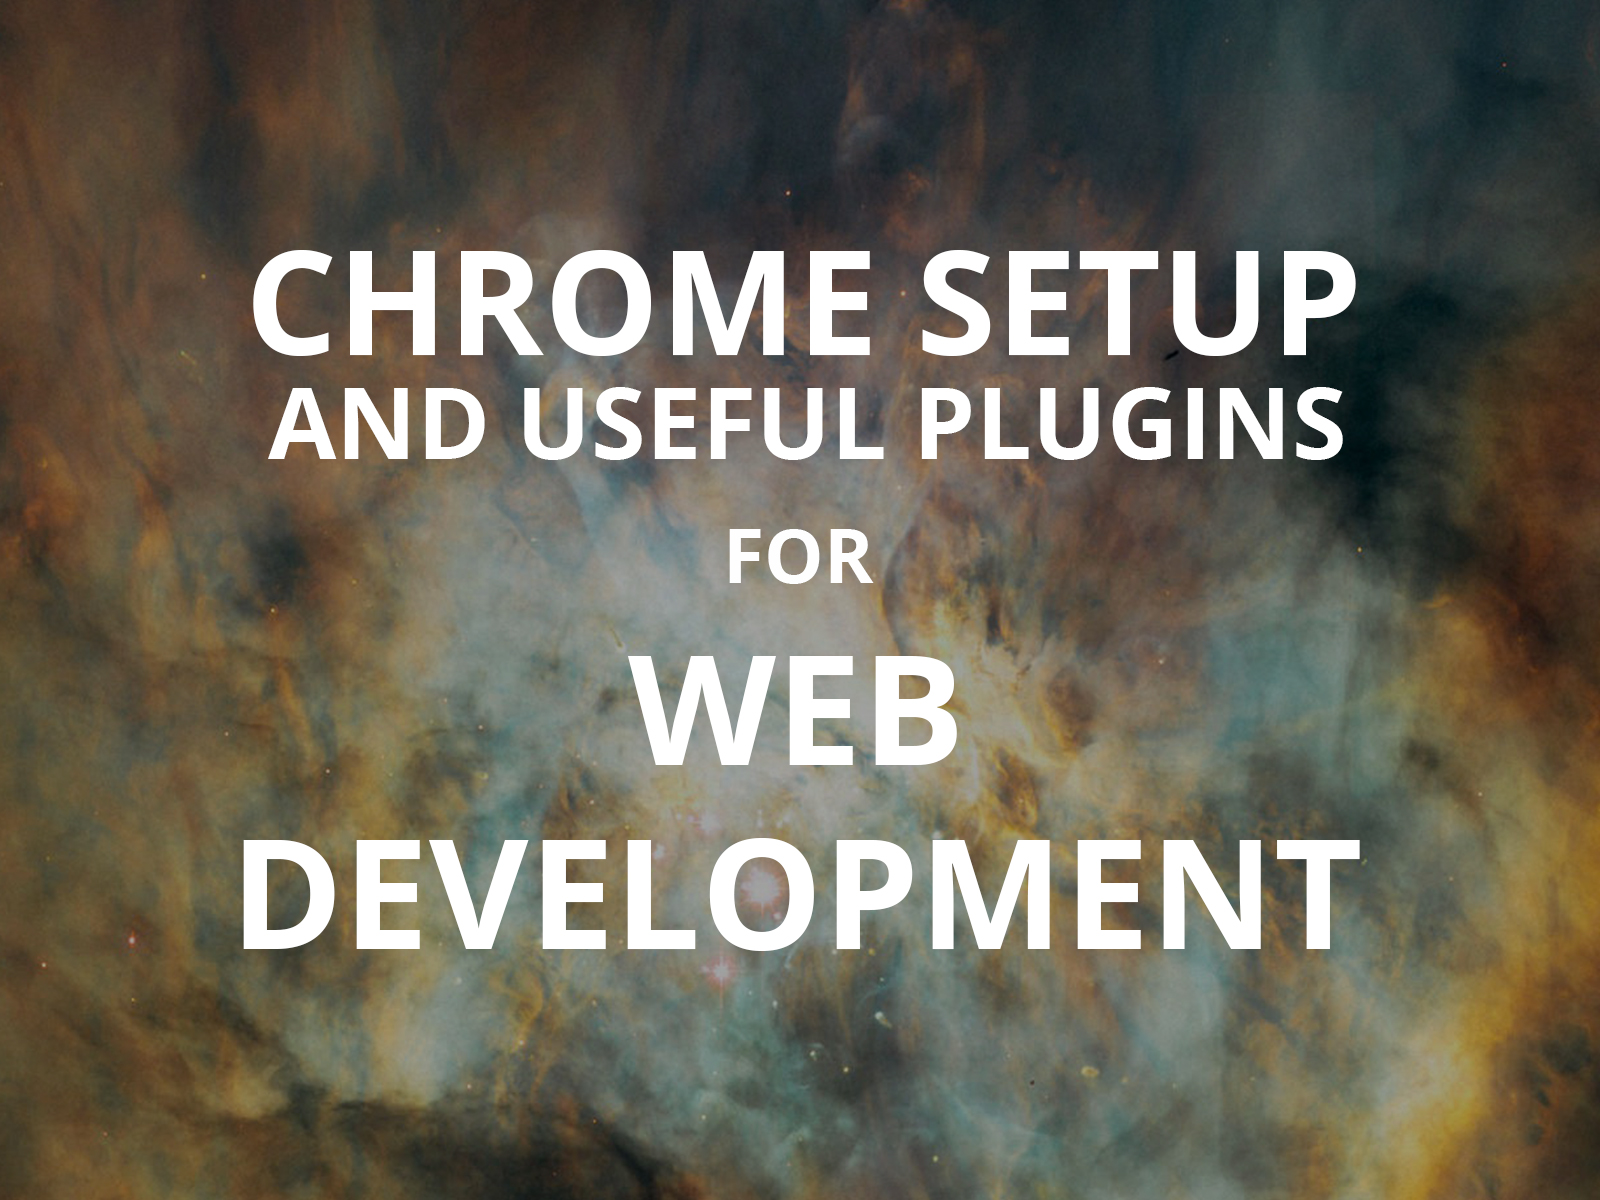 Chrome setup and useful plugins for Web Development